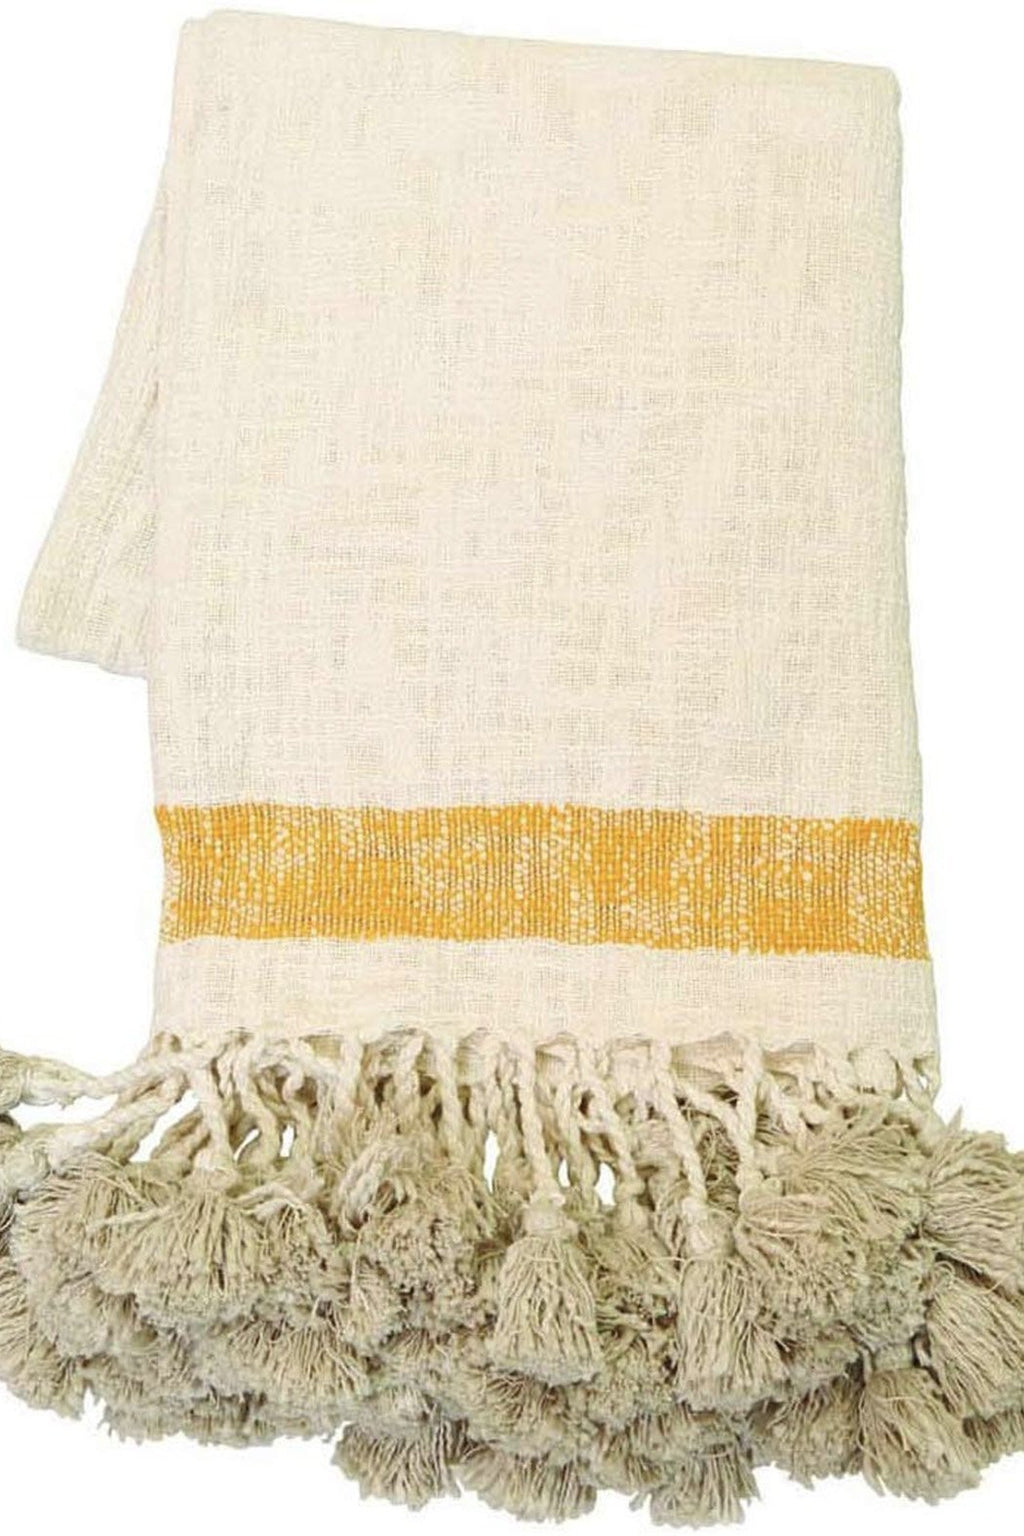 EcoVibe Style - Hand Woven West Throw, Pillows + Throws